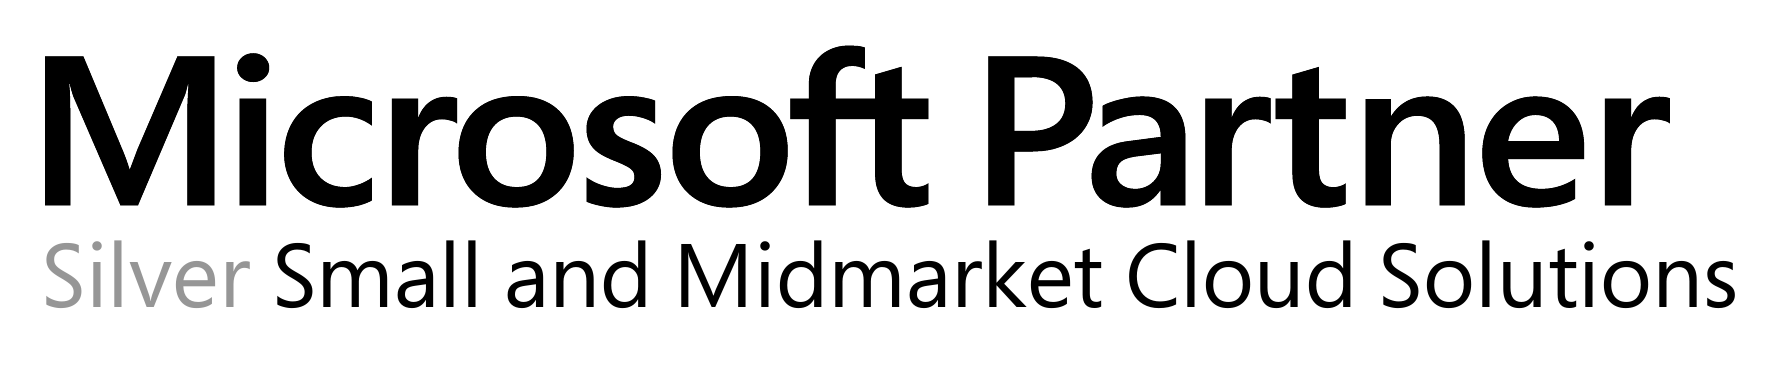 Microsoft Partner Logo (Silver Small and Medmarket Cloud Solutions)